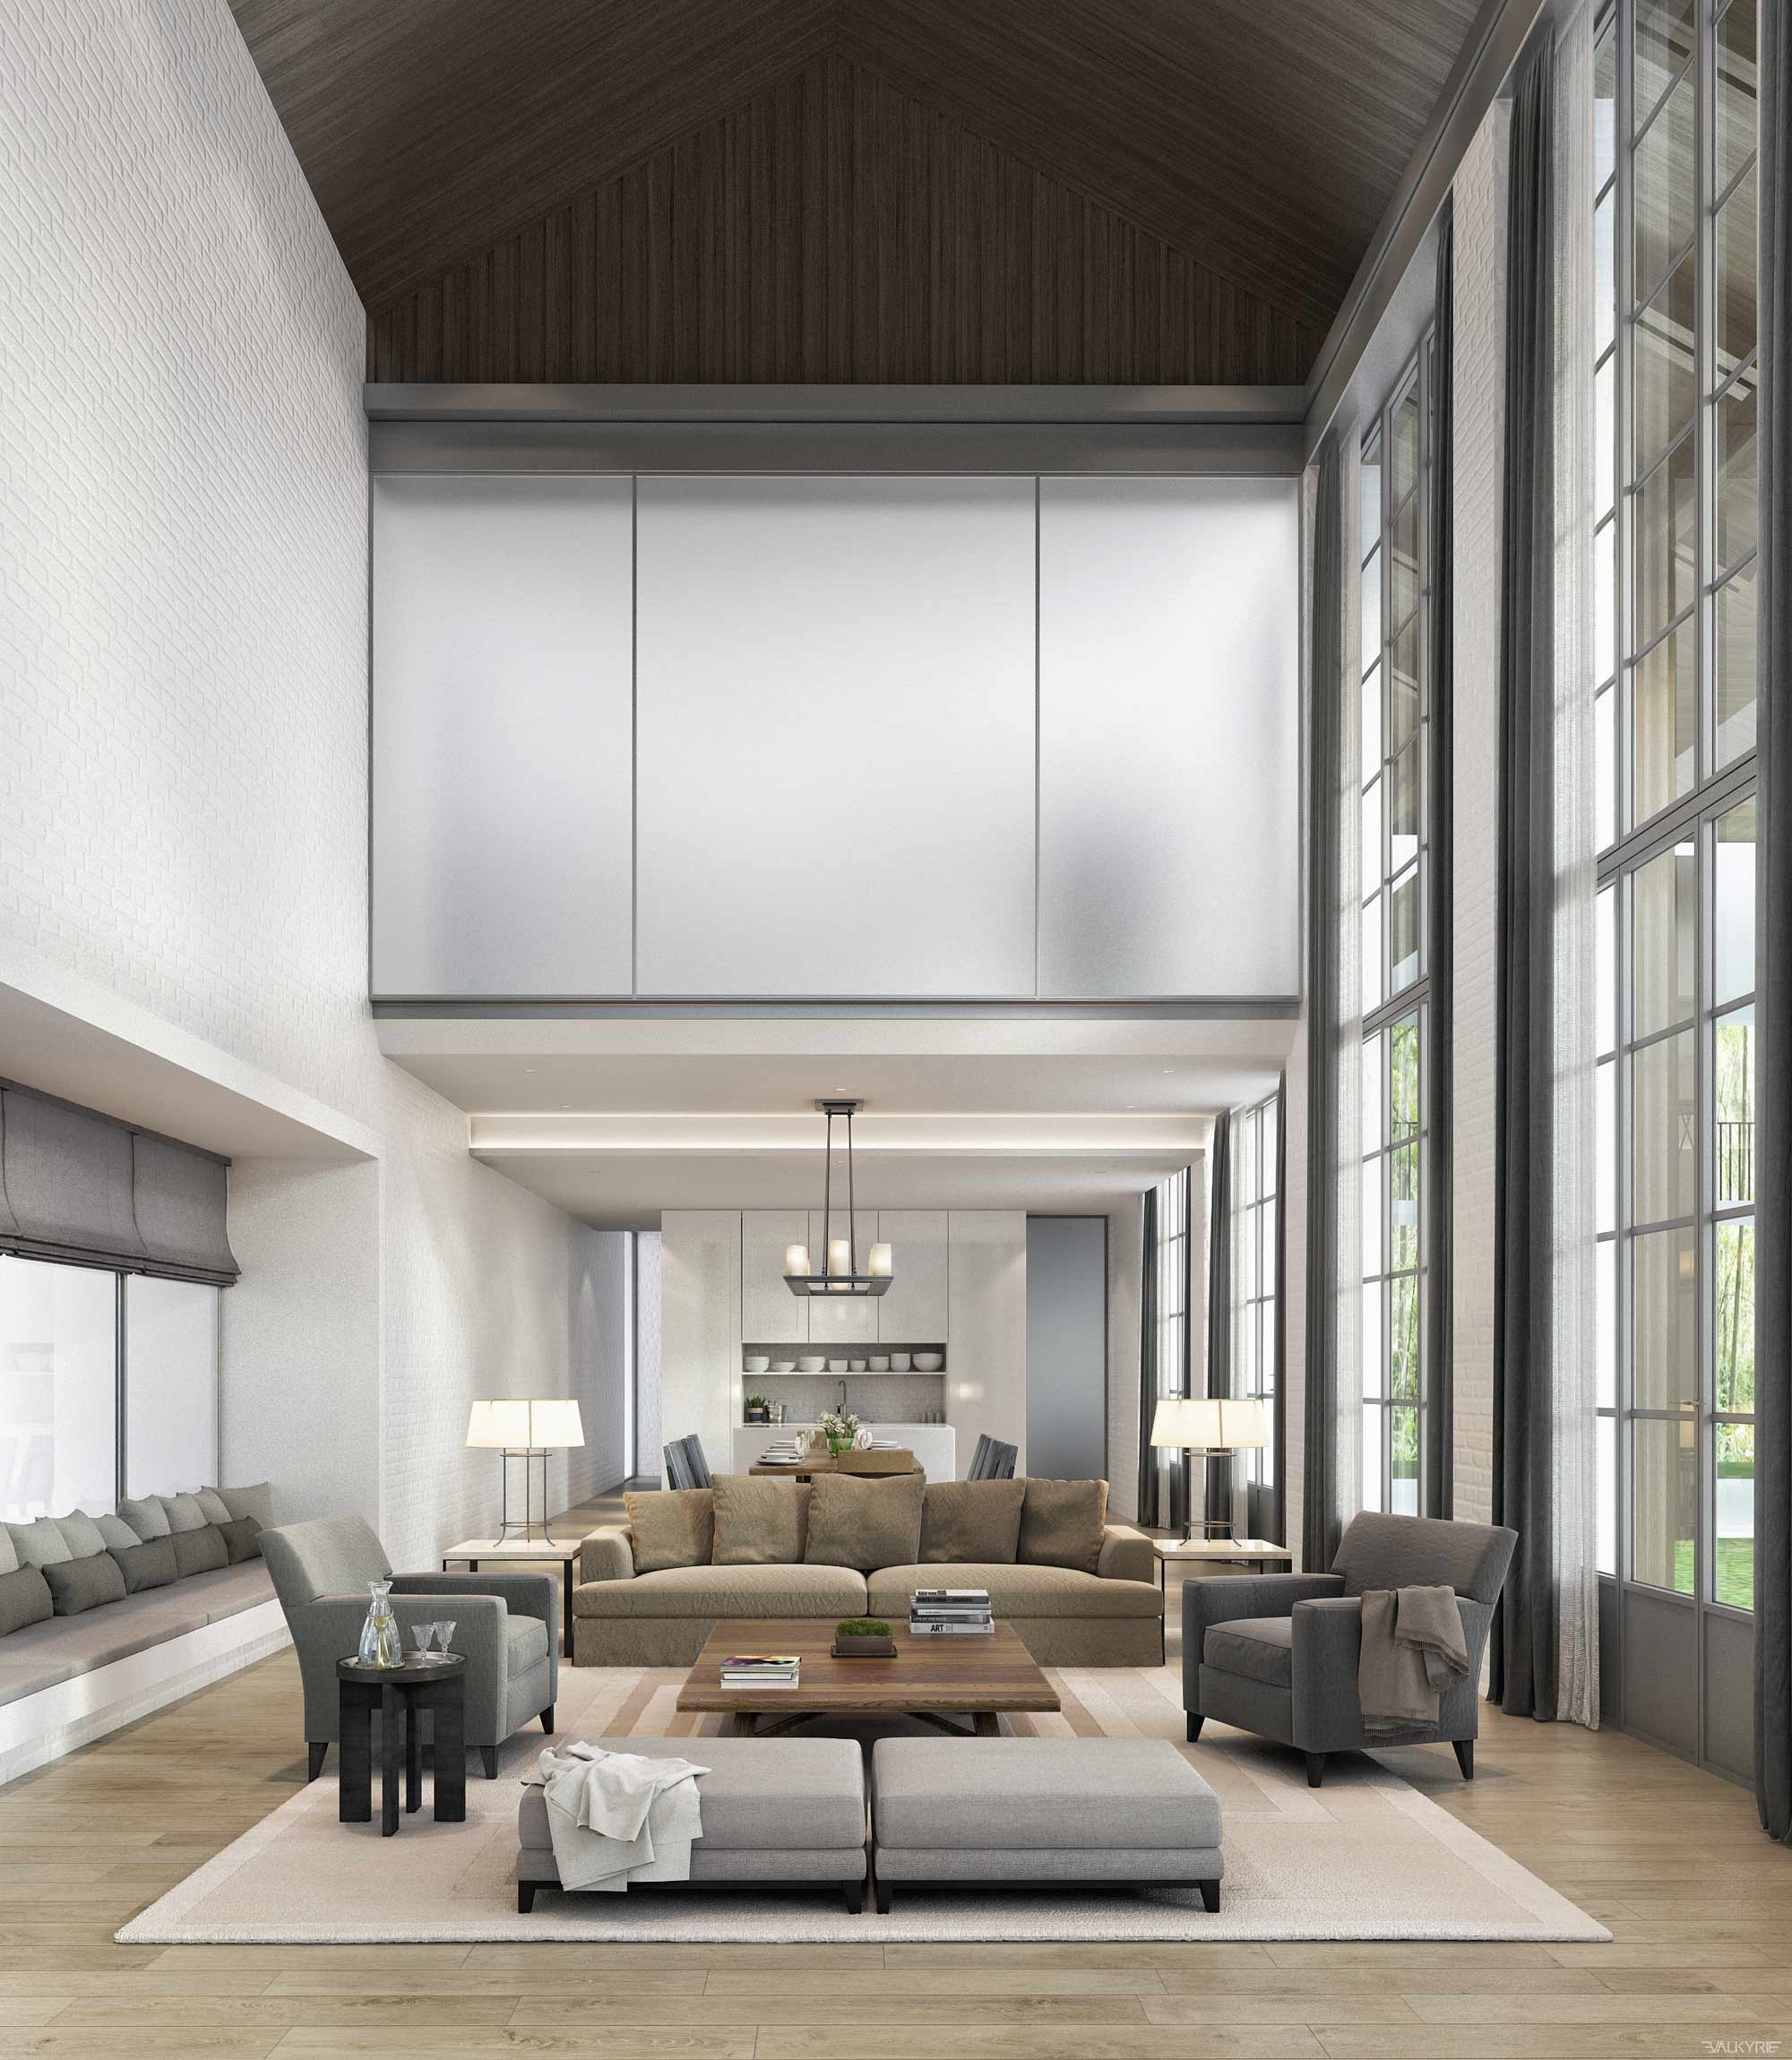 Any furniture would feel dwarfed by these massive windows, so keeping ...